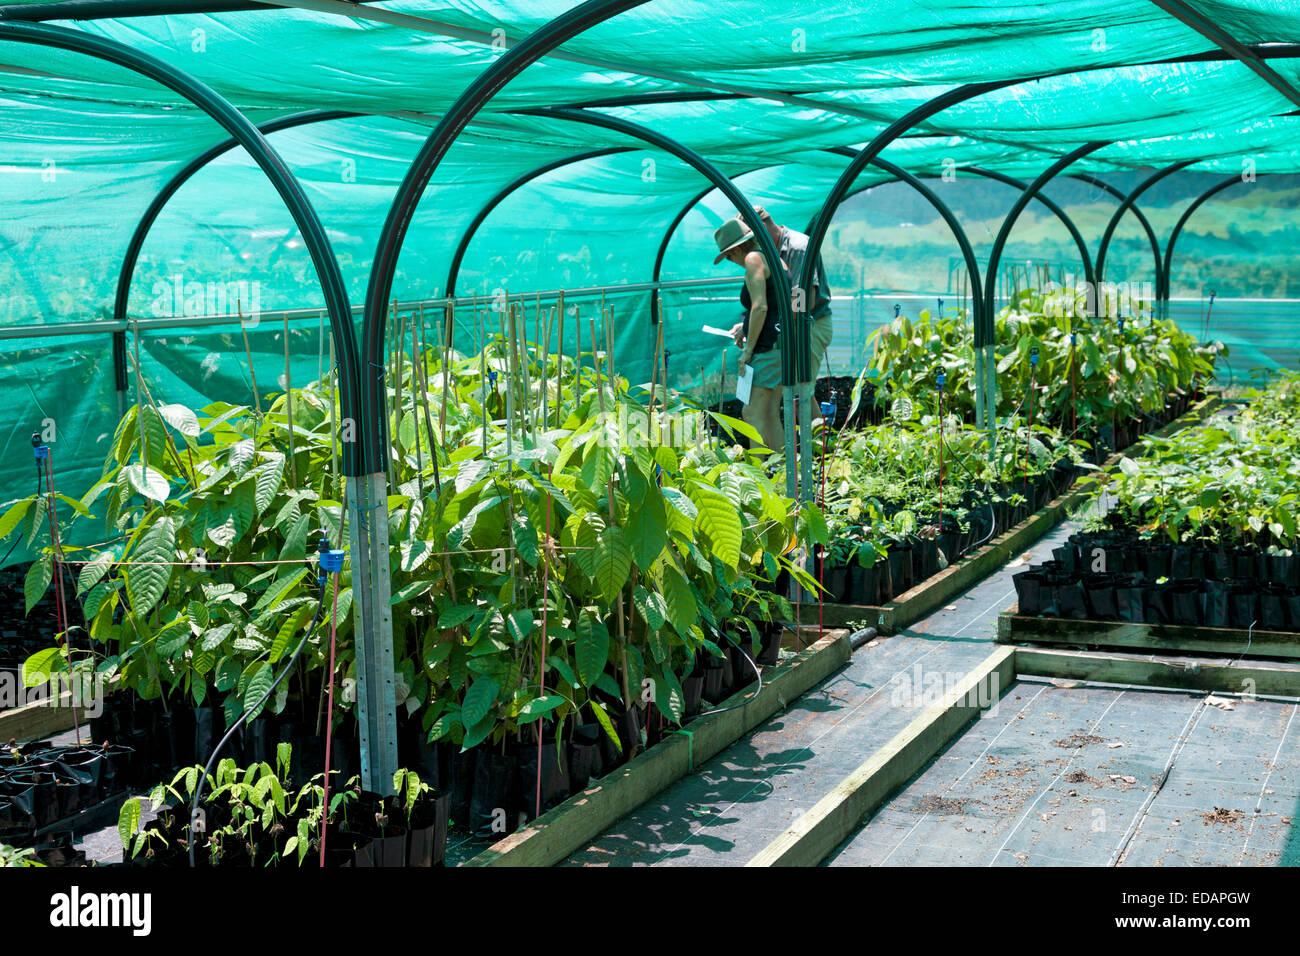 Cocao nursery from the Charley's chocolate factory in Mission Beach Australia - Stock Image